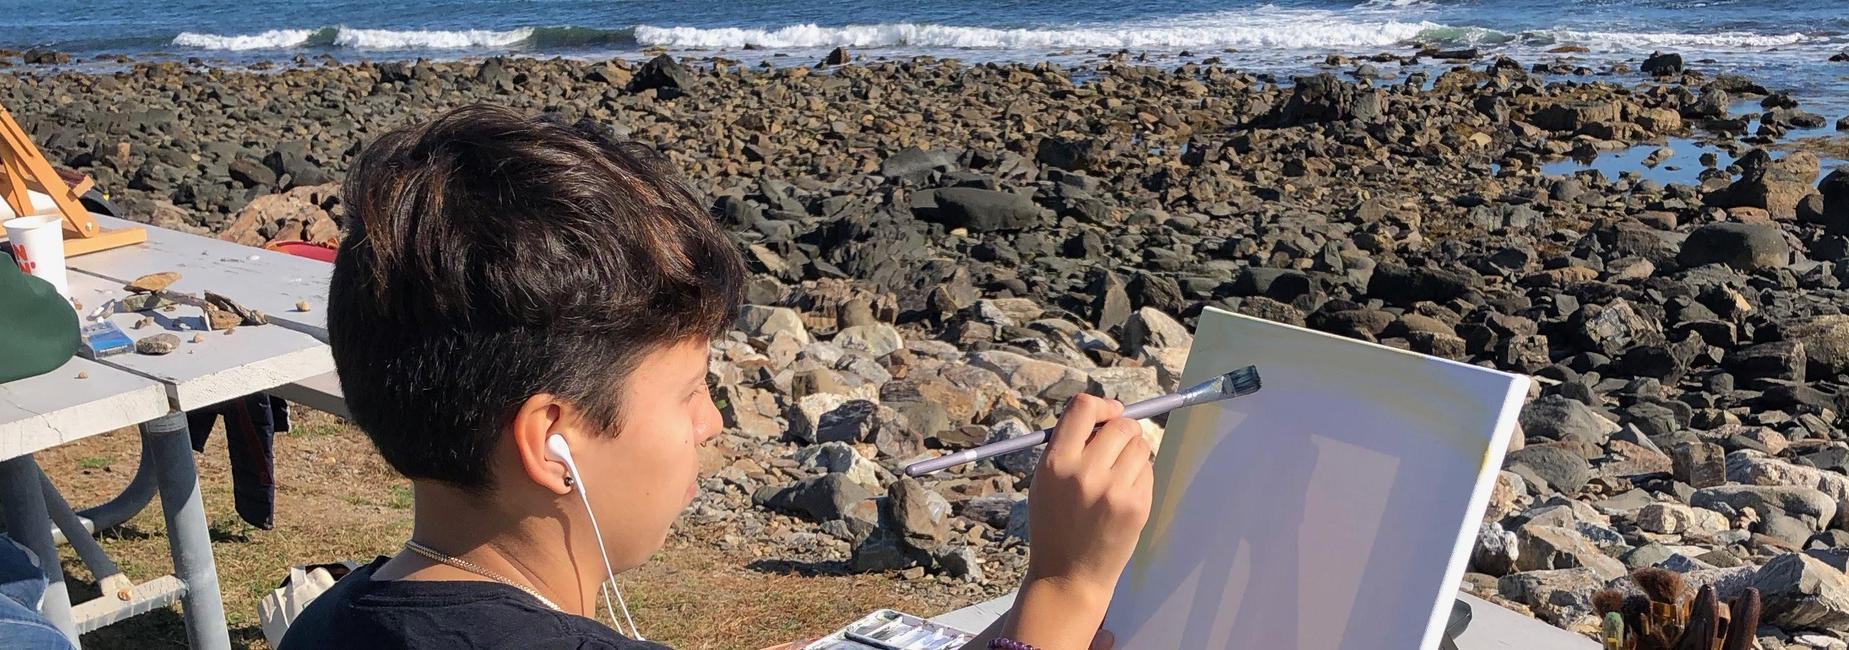 Student Painting At Beach